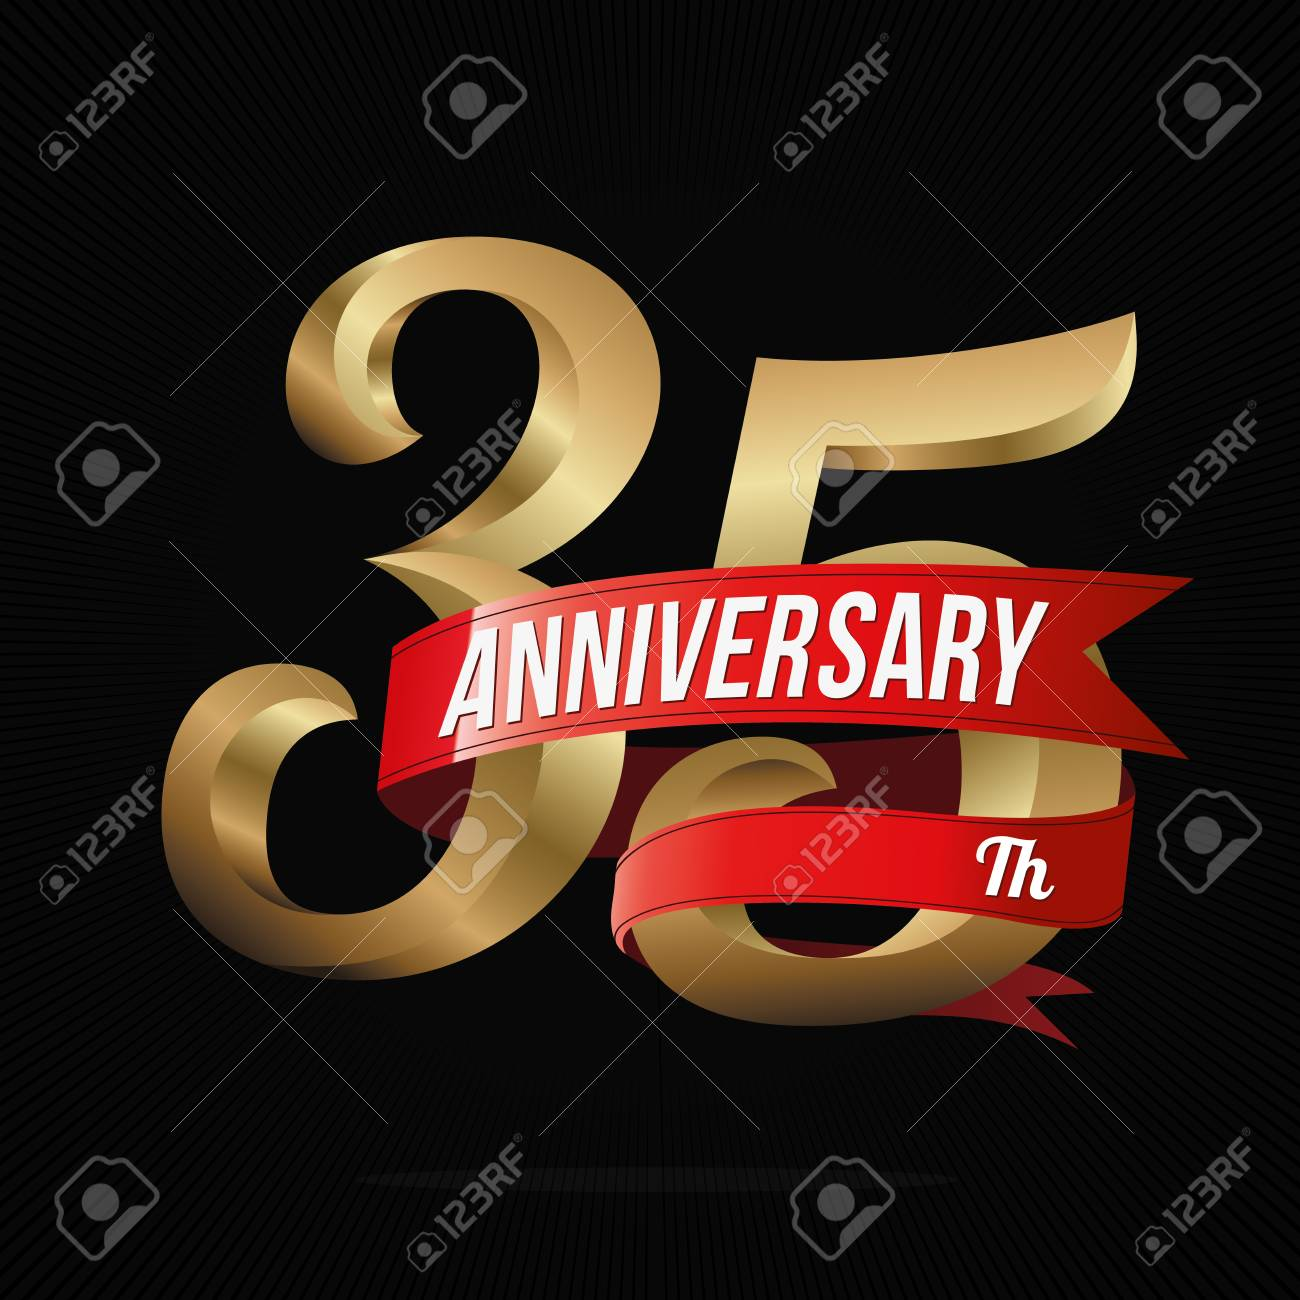 35 Years Anniversary Golden Logo Celebration With Red Ribbon Stock